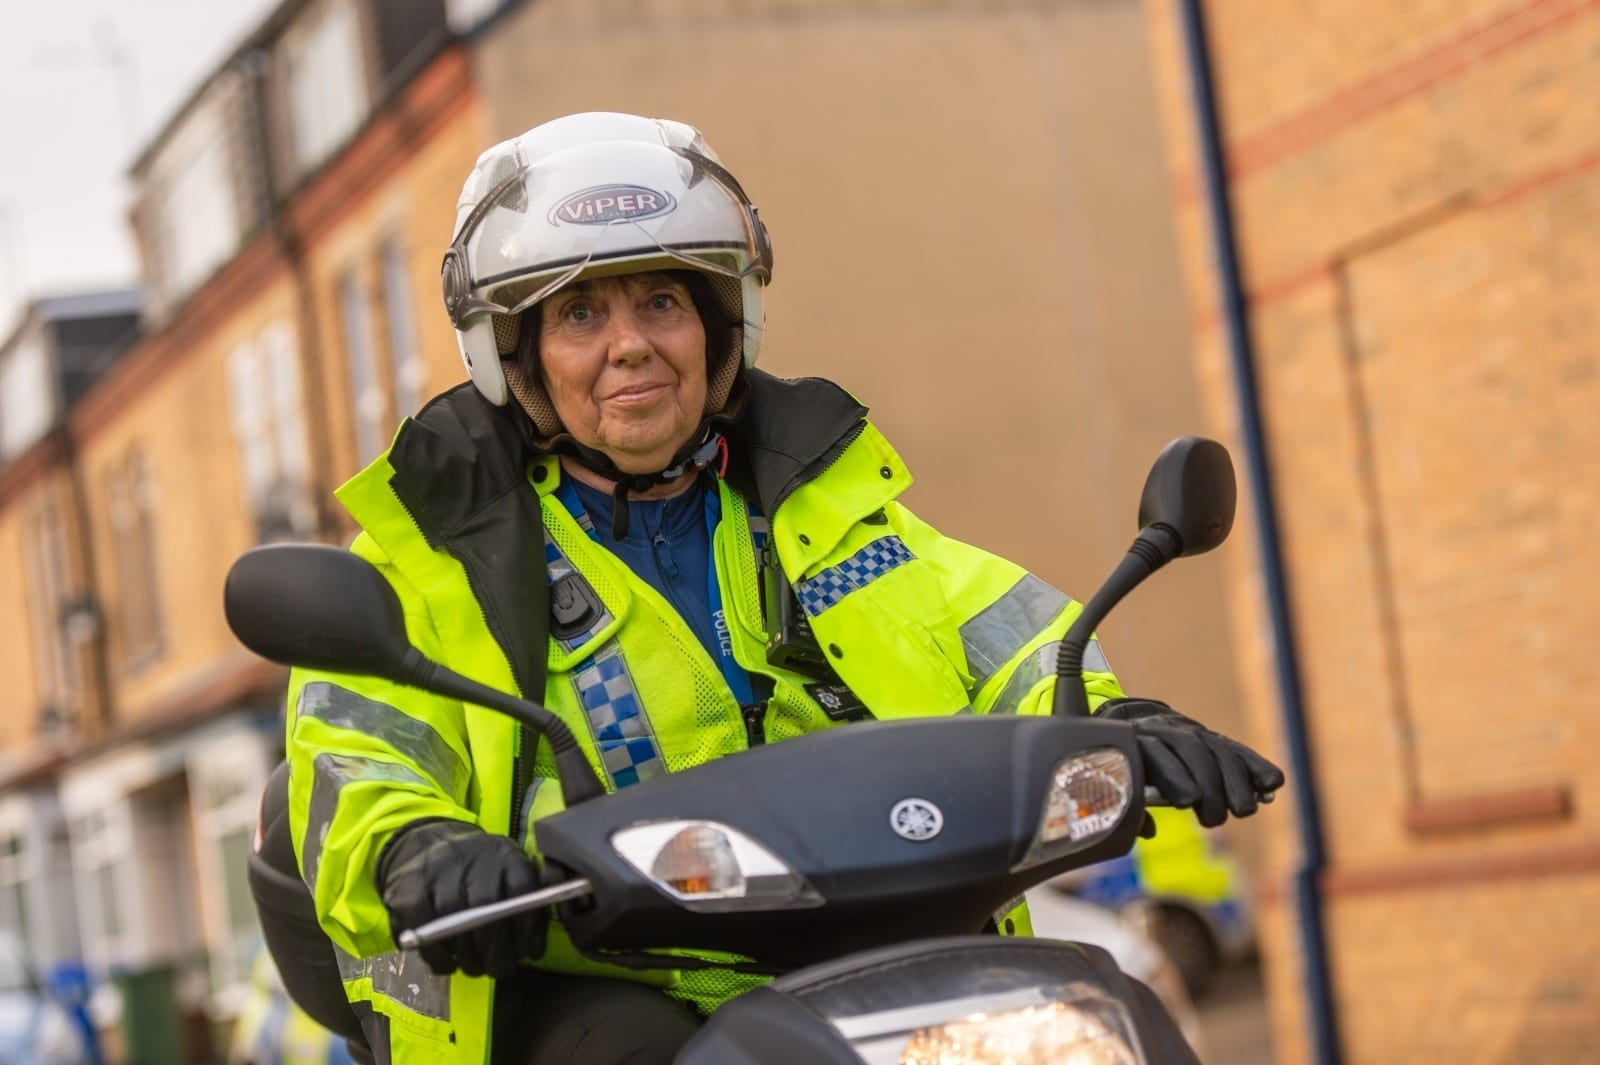 'I Might Look Old But I Feel Young And I Still Have A Lot To Give' – Gran, 71, Is UK's Oldest PCSO And Has No Plans To Retire